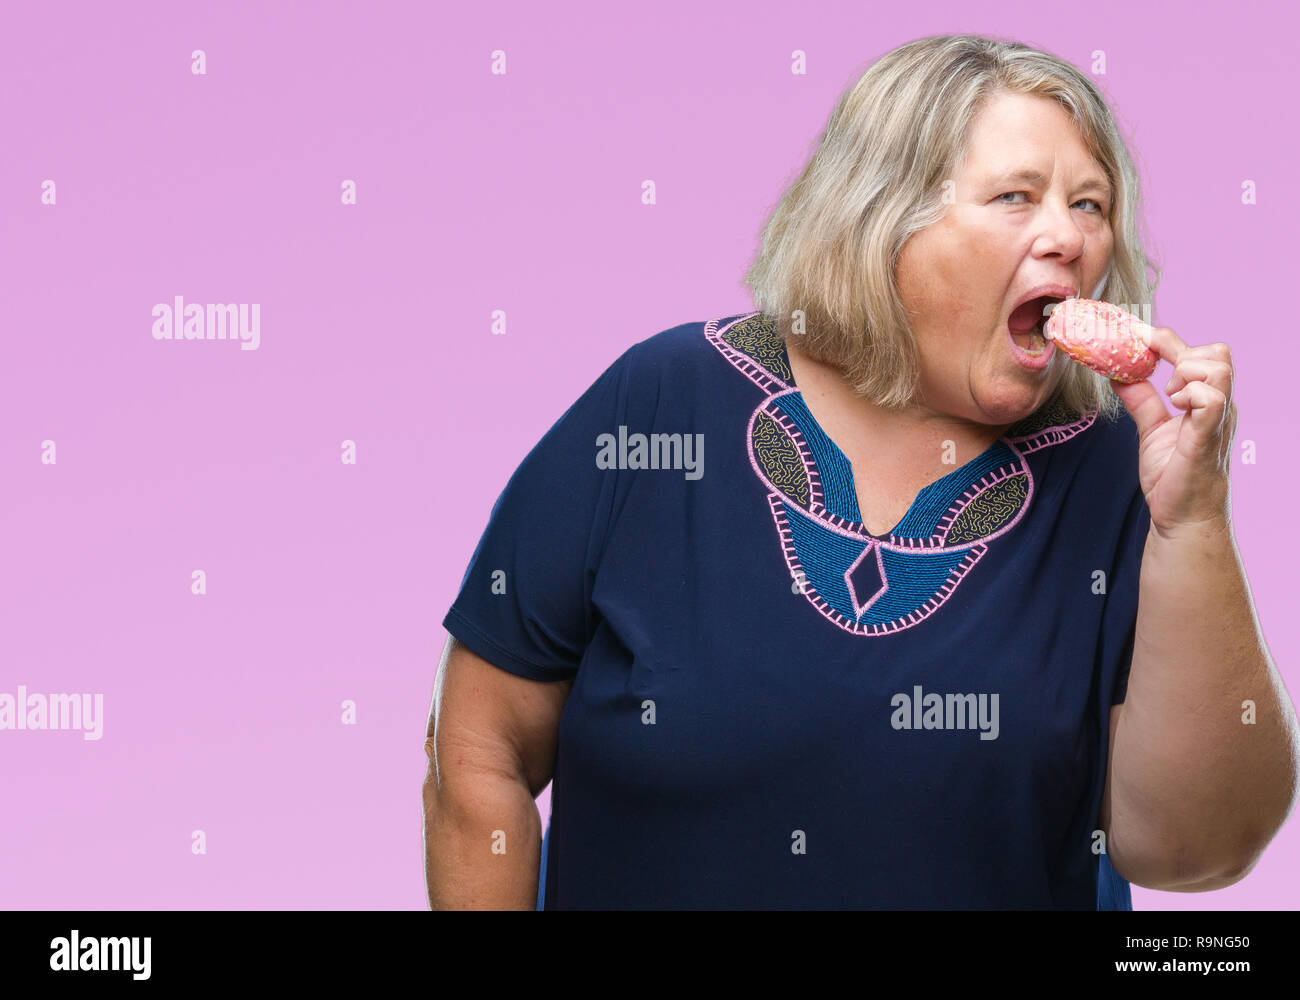 fbc74436b33 Senior plus size caucasian woman eating sugar donut over isolated background  with a confident expression on smart face thinking serious